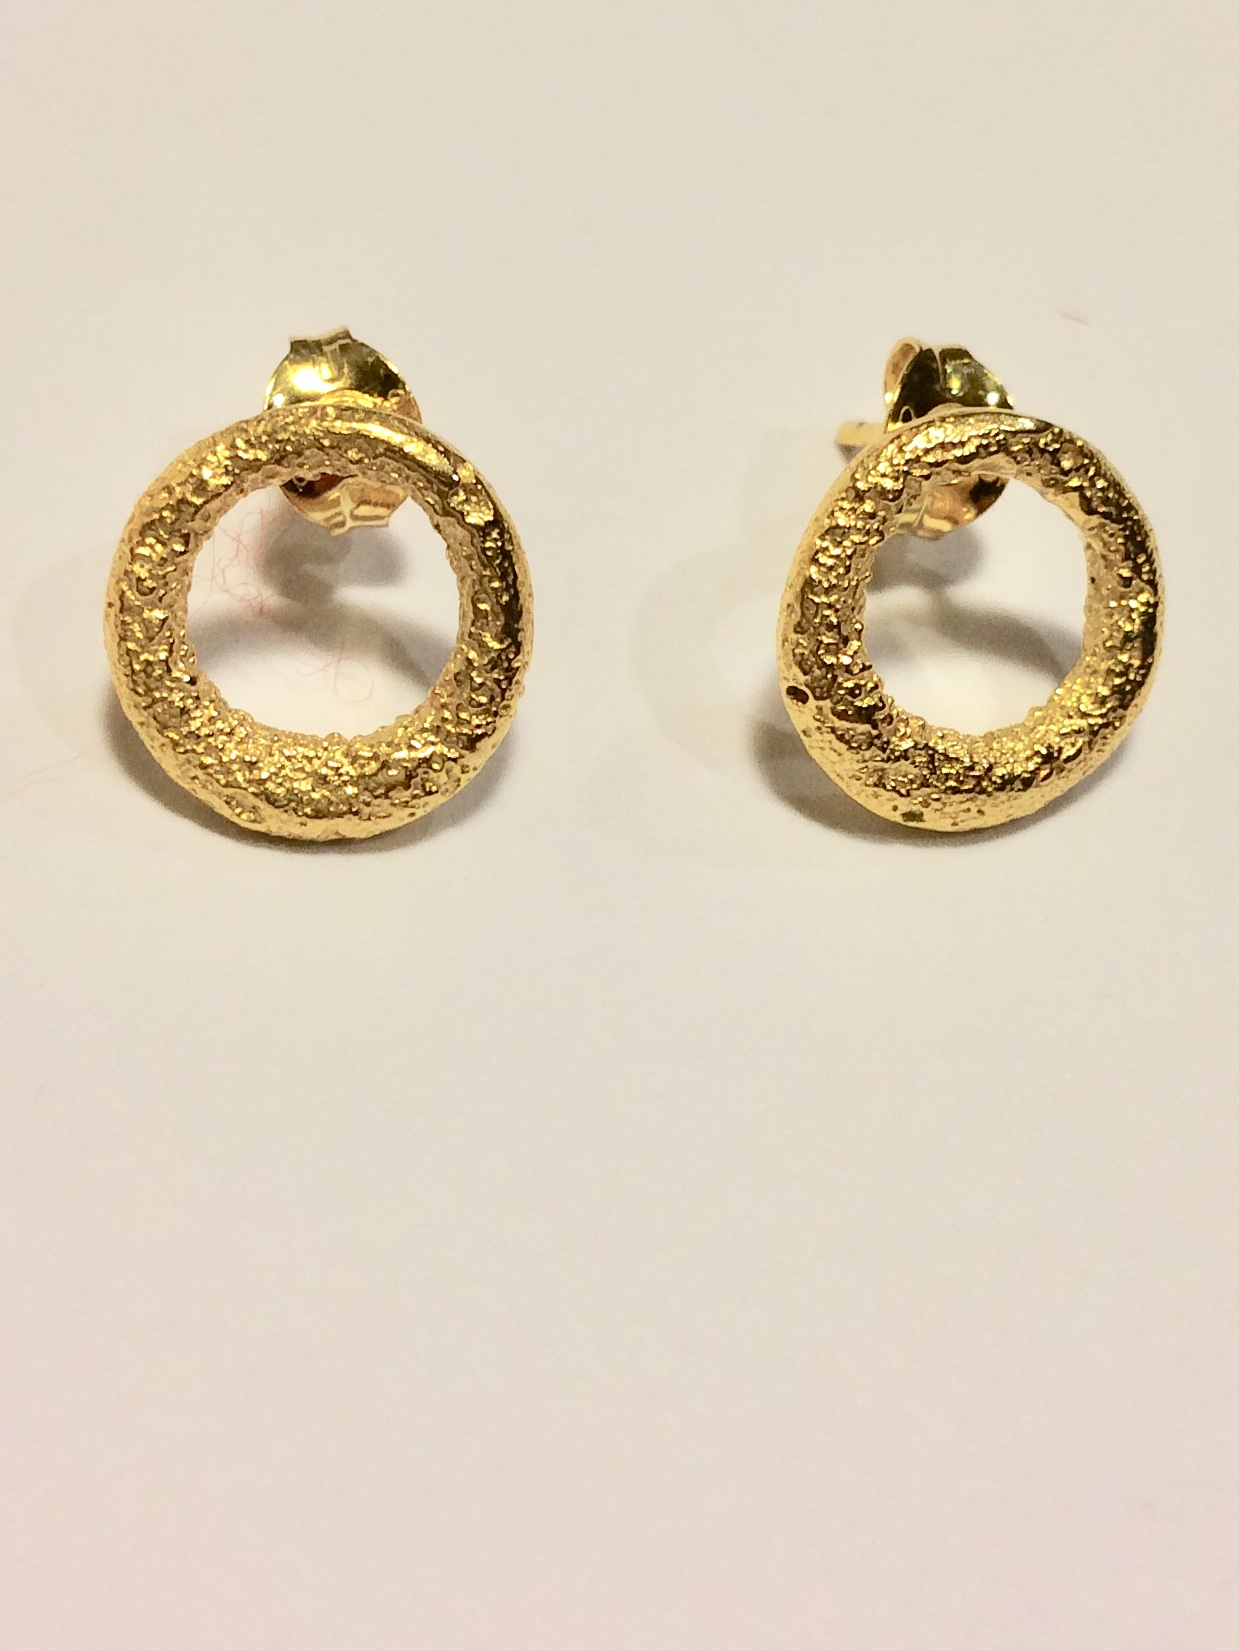 Silver Gilt 18ct Ring Stud earrings